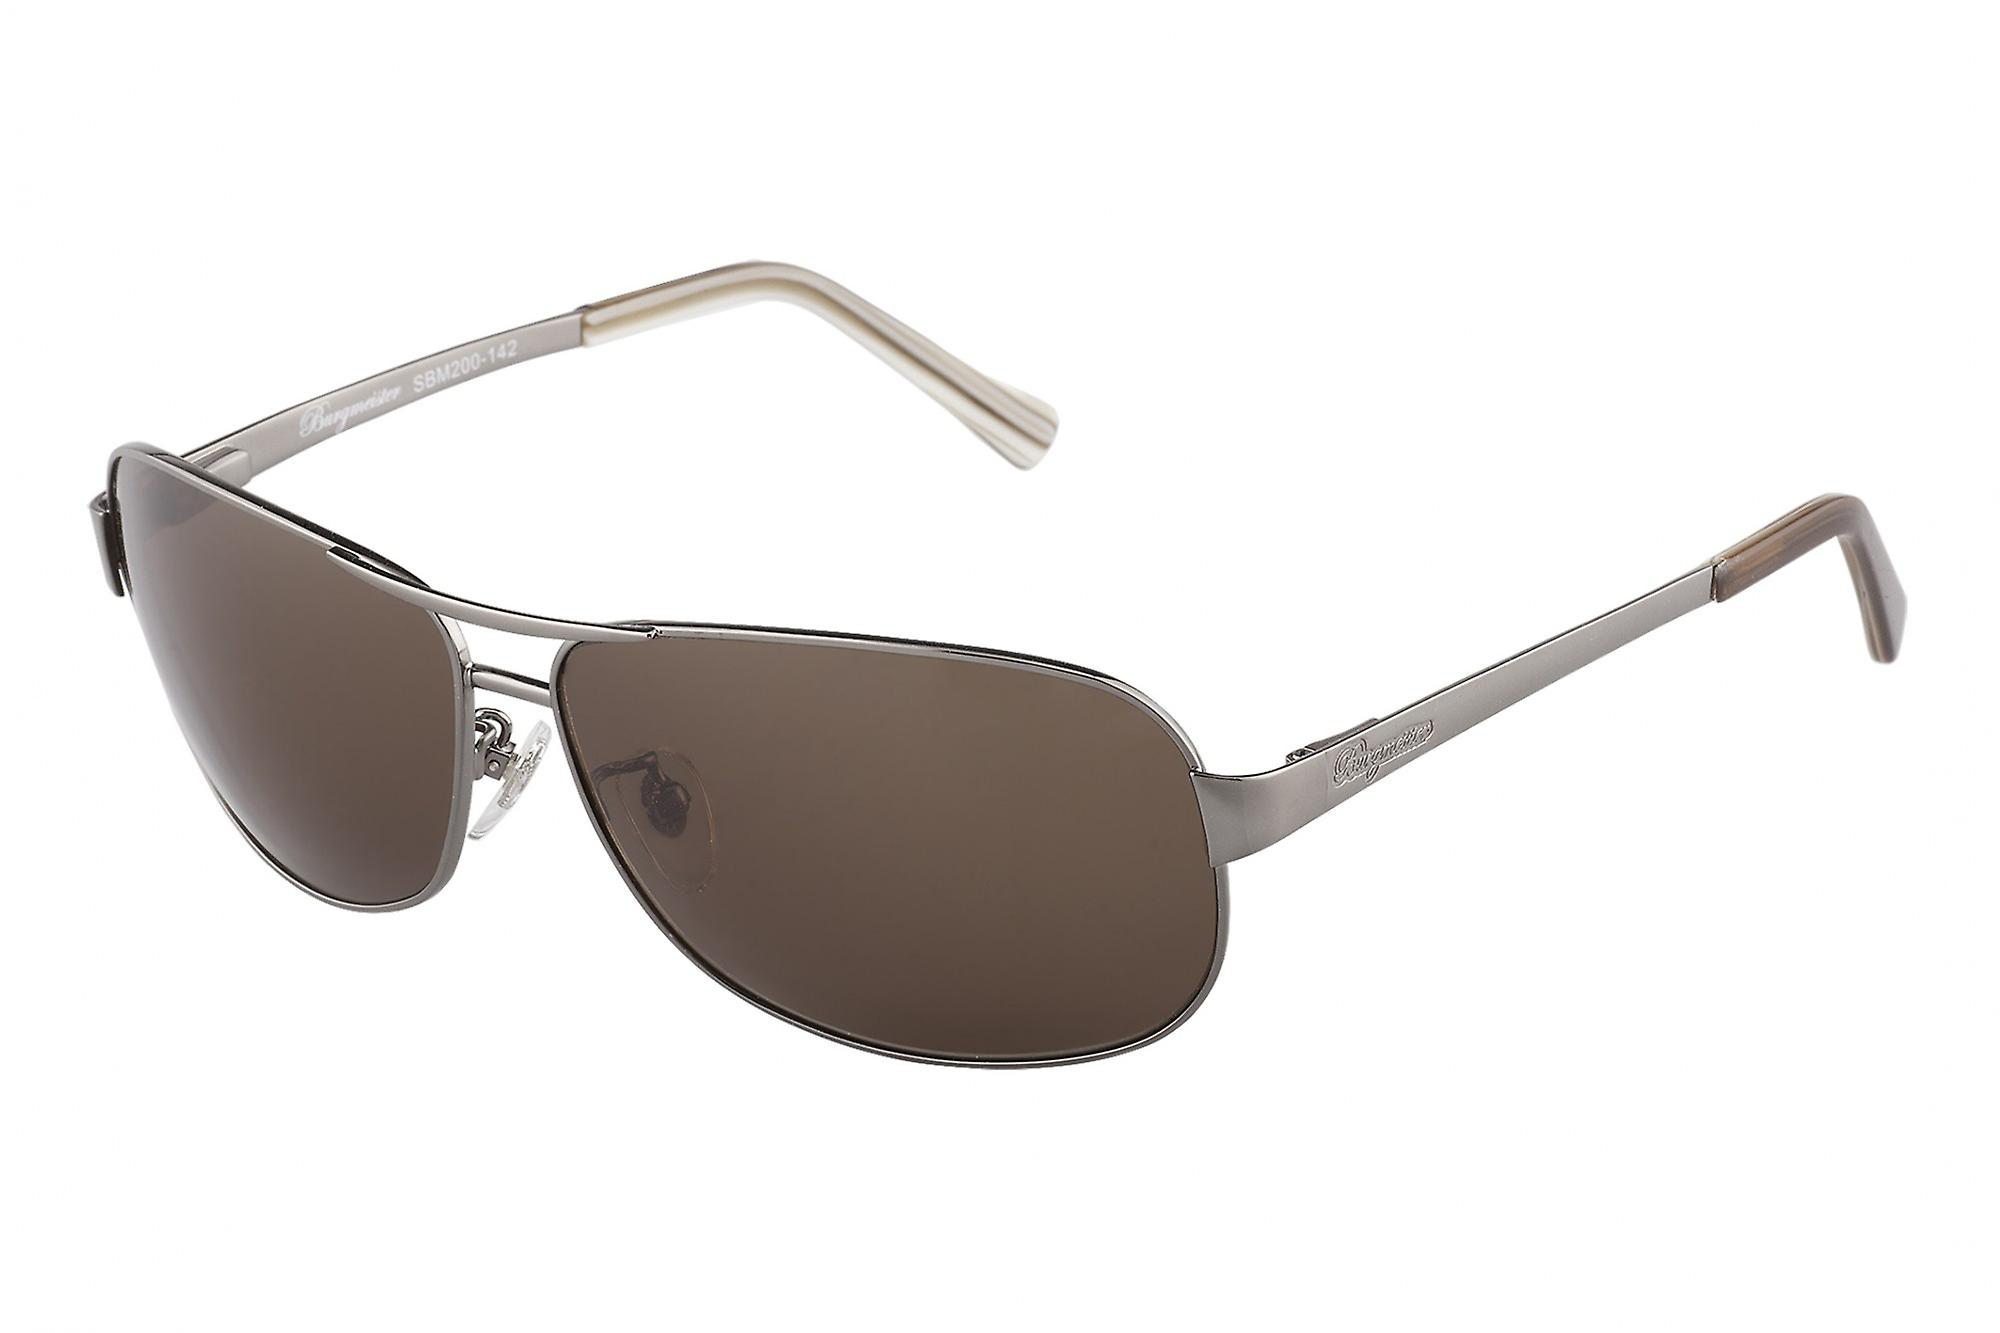 Burgmeister Gents sunglasses Arizona, SBM200-142